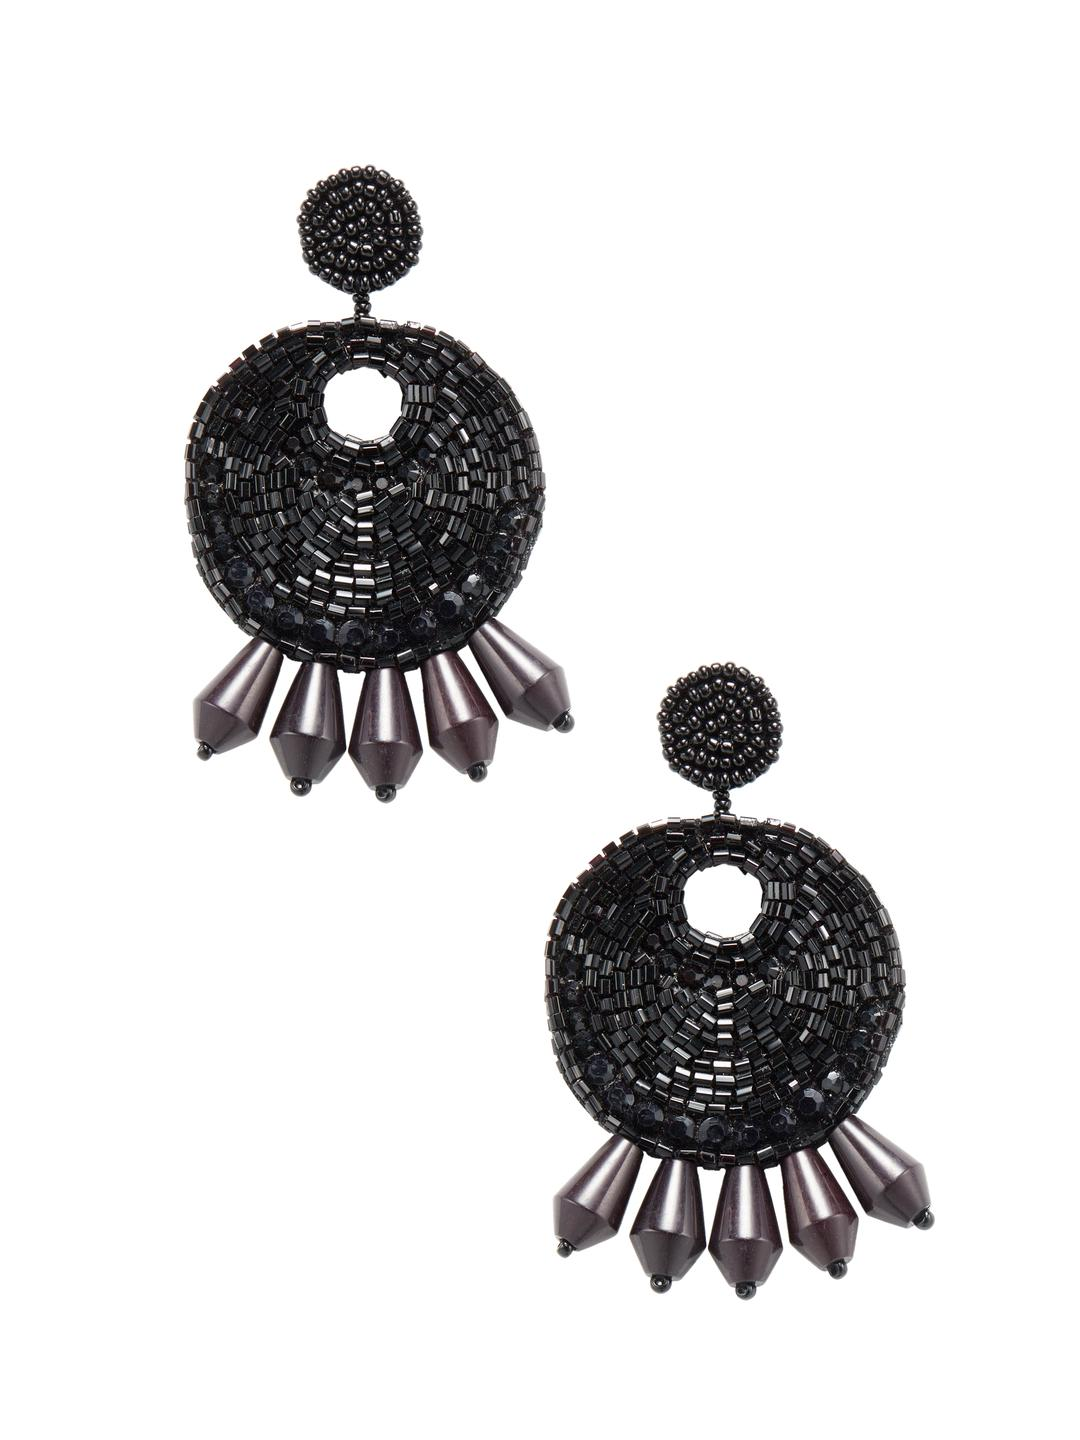 Kenneth Jay Lane Black Seed Bead Round Gypsy Hoop With Drops Clip Earring Black 5R7IMHG